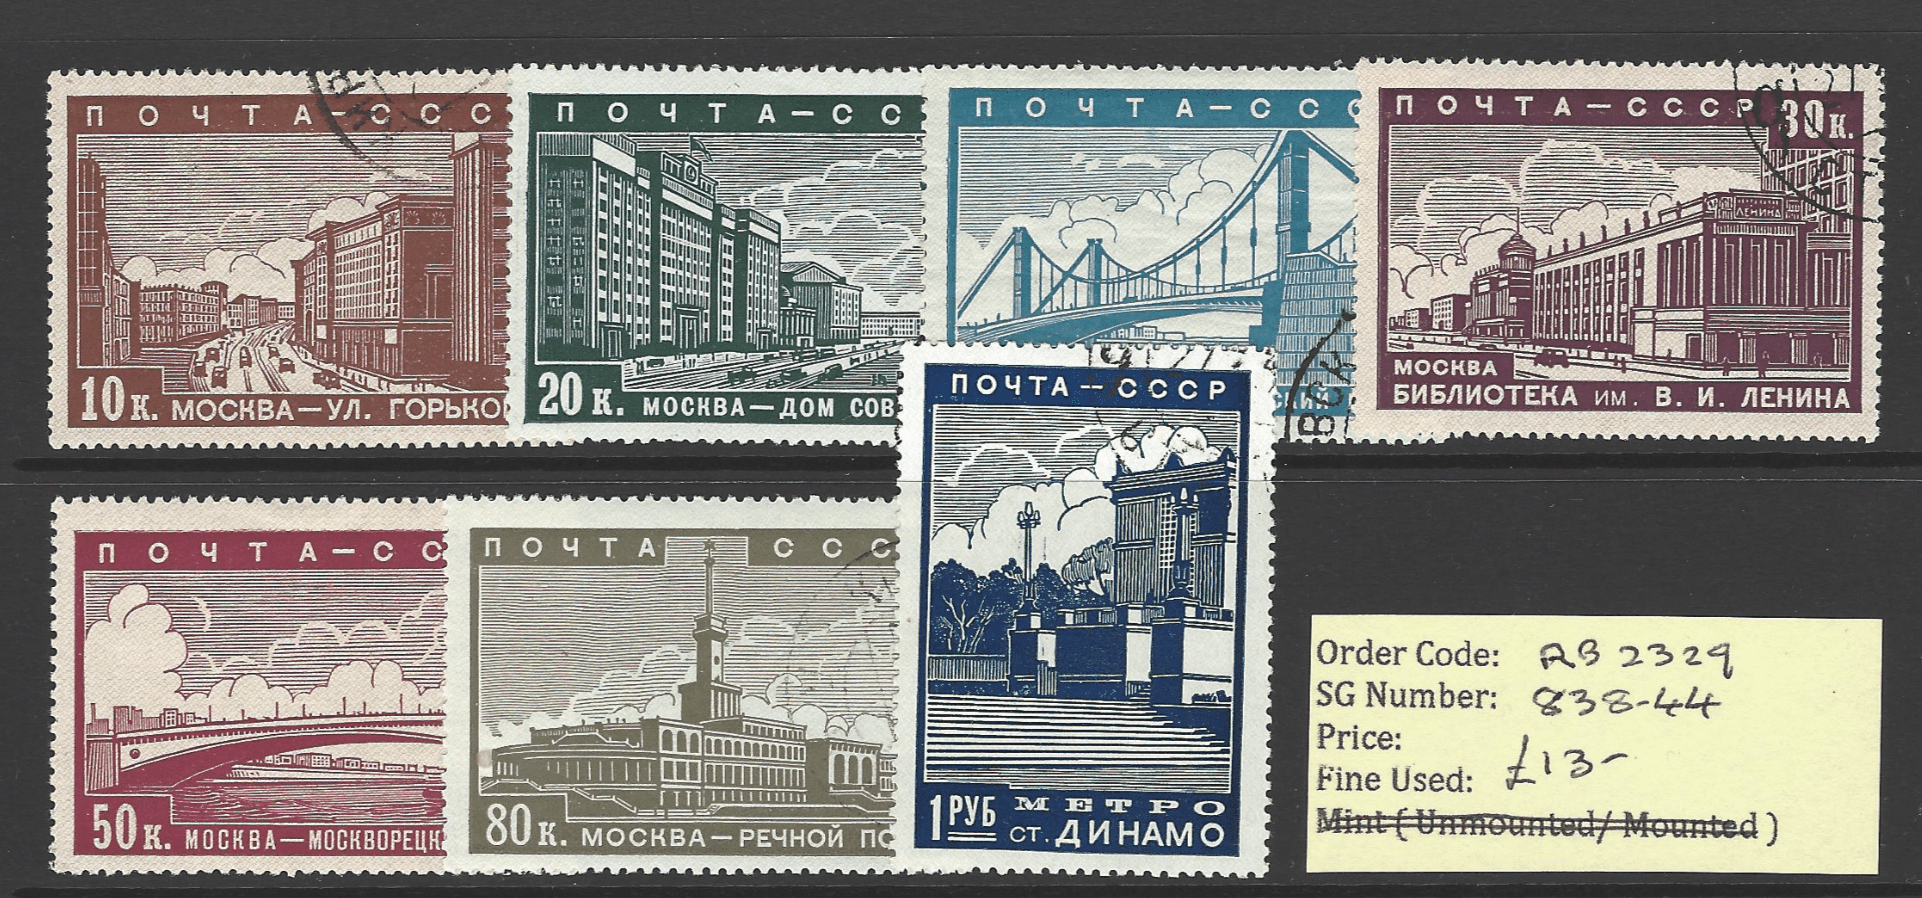 SG 838-44, Russia Stamp